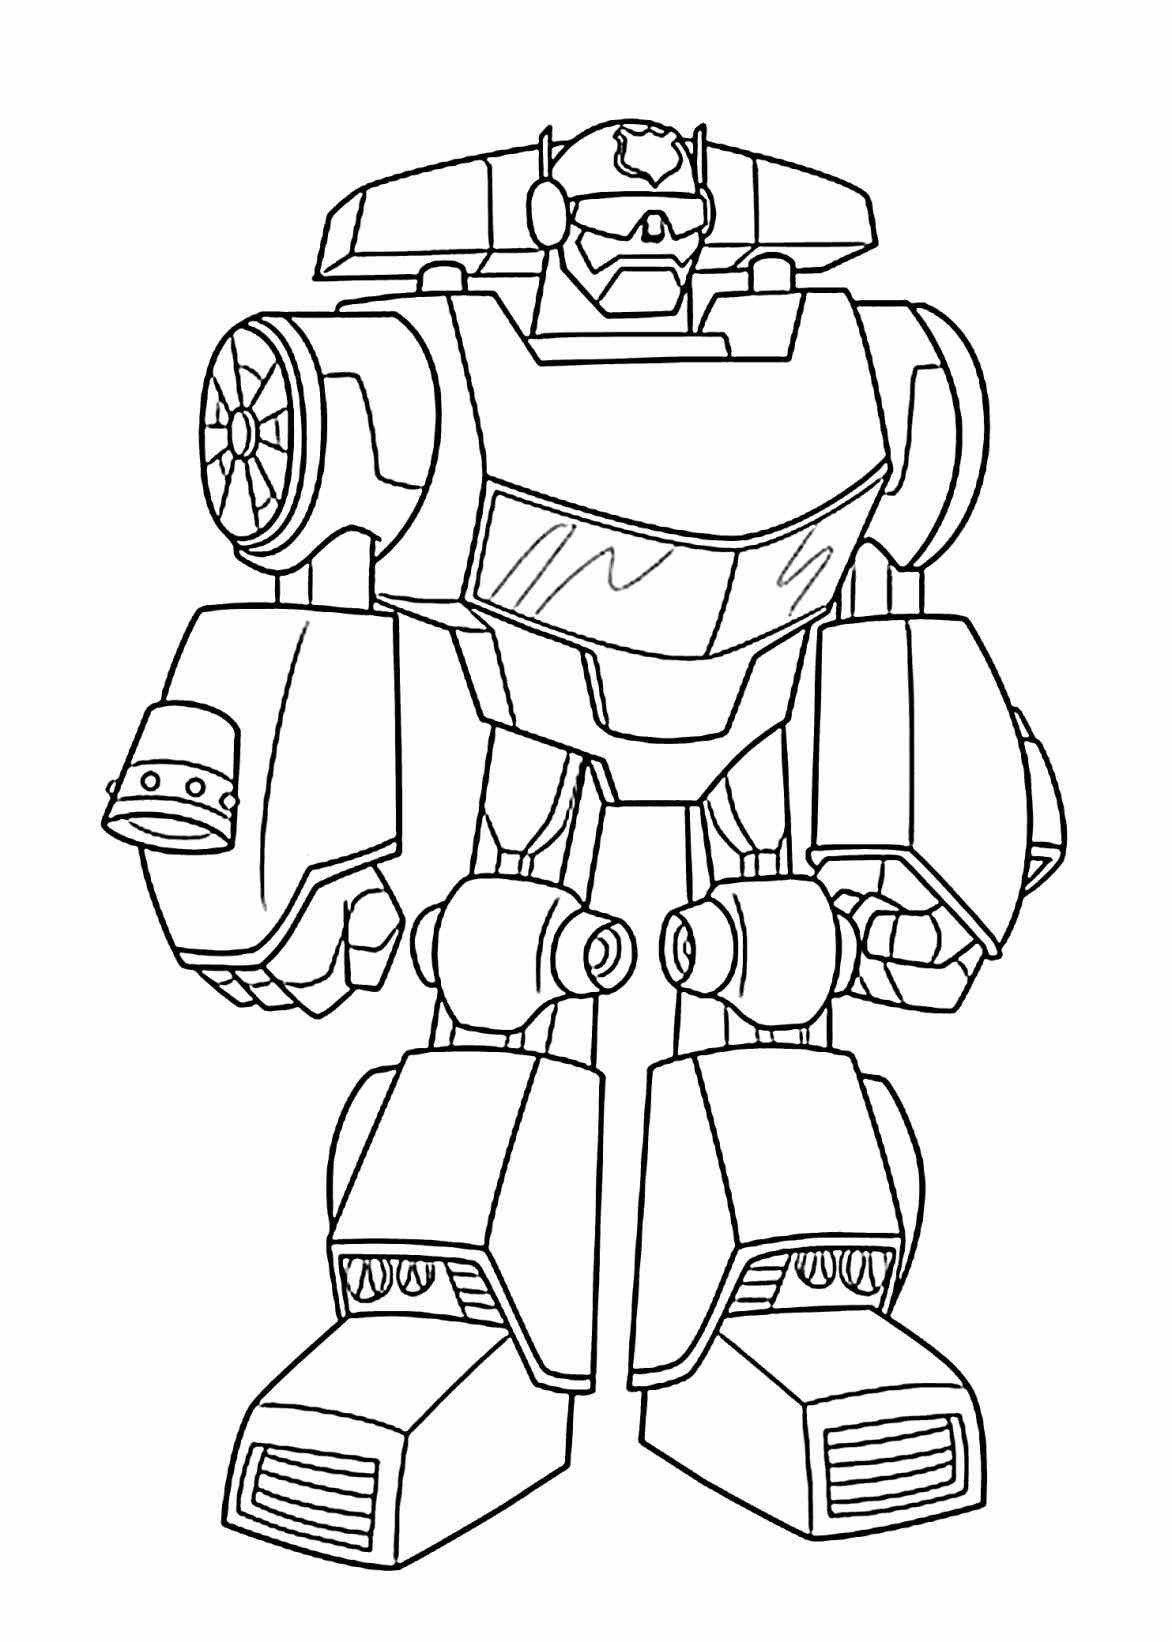 Transformers Coloring Pages Bumblebee  Bumble Bee Coloring Pages Transformers Bumblebee Page With